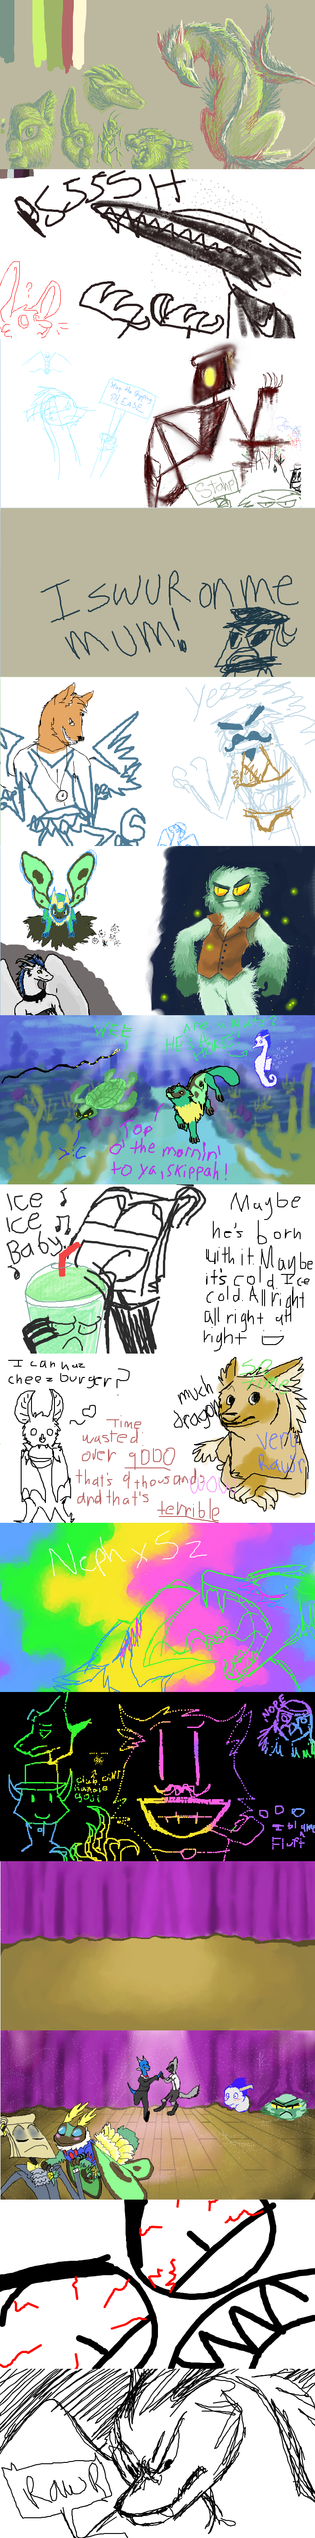 RESET iScribble 001 by fluffyz